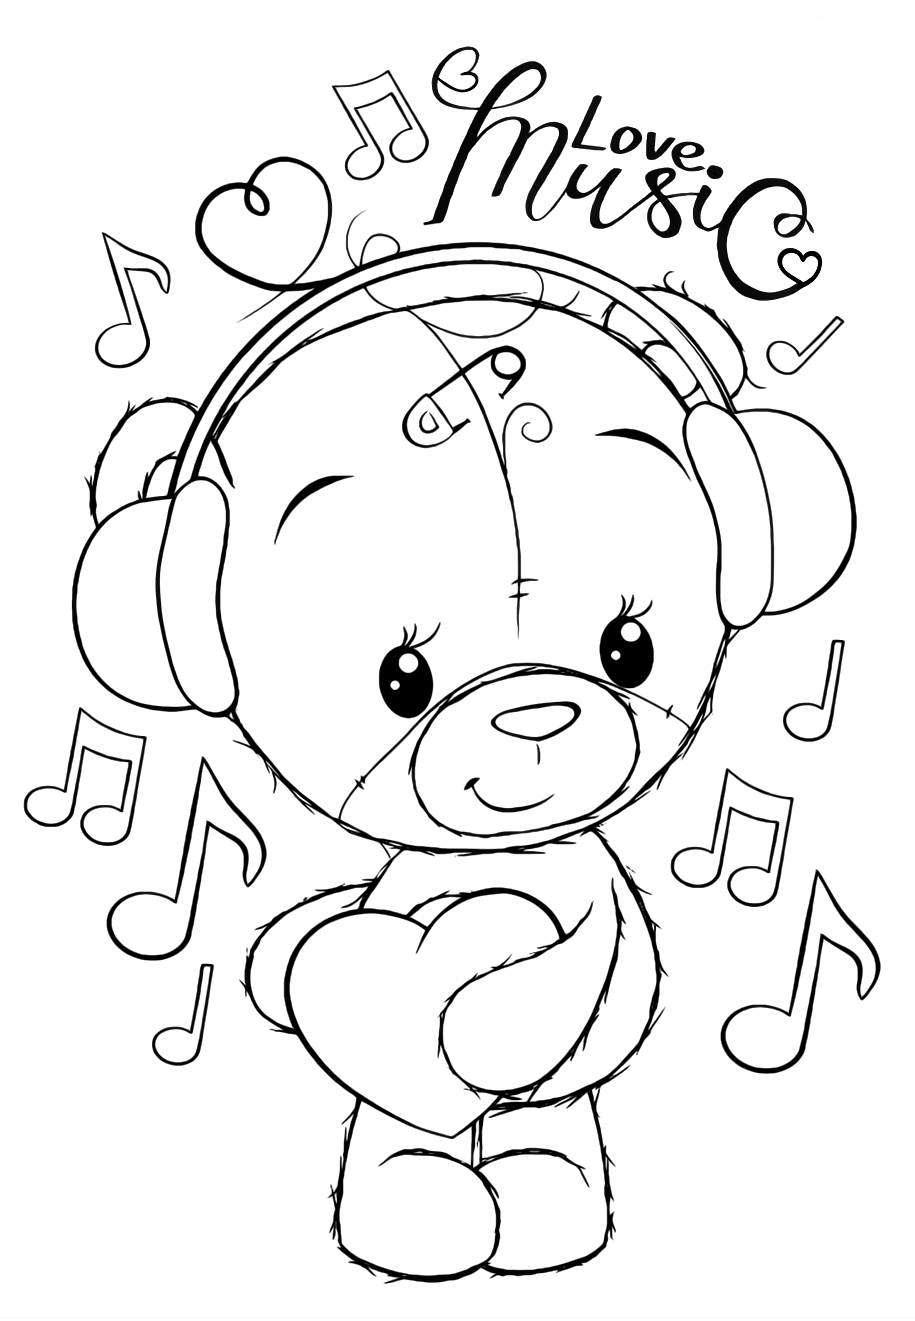 Teddy bear loves music